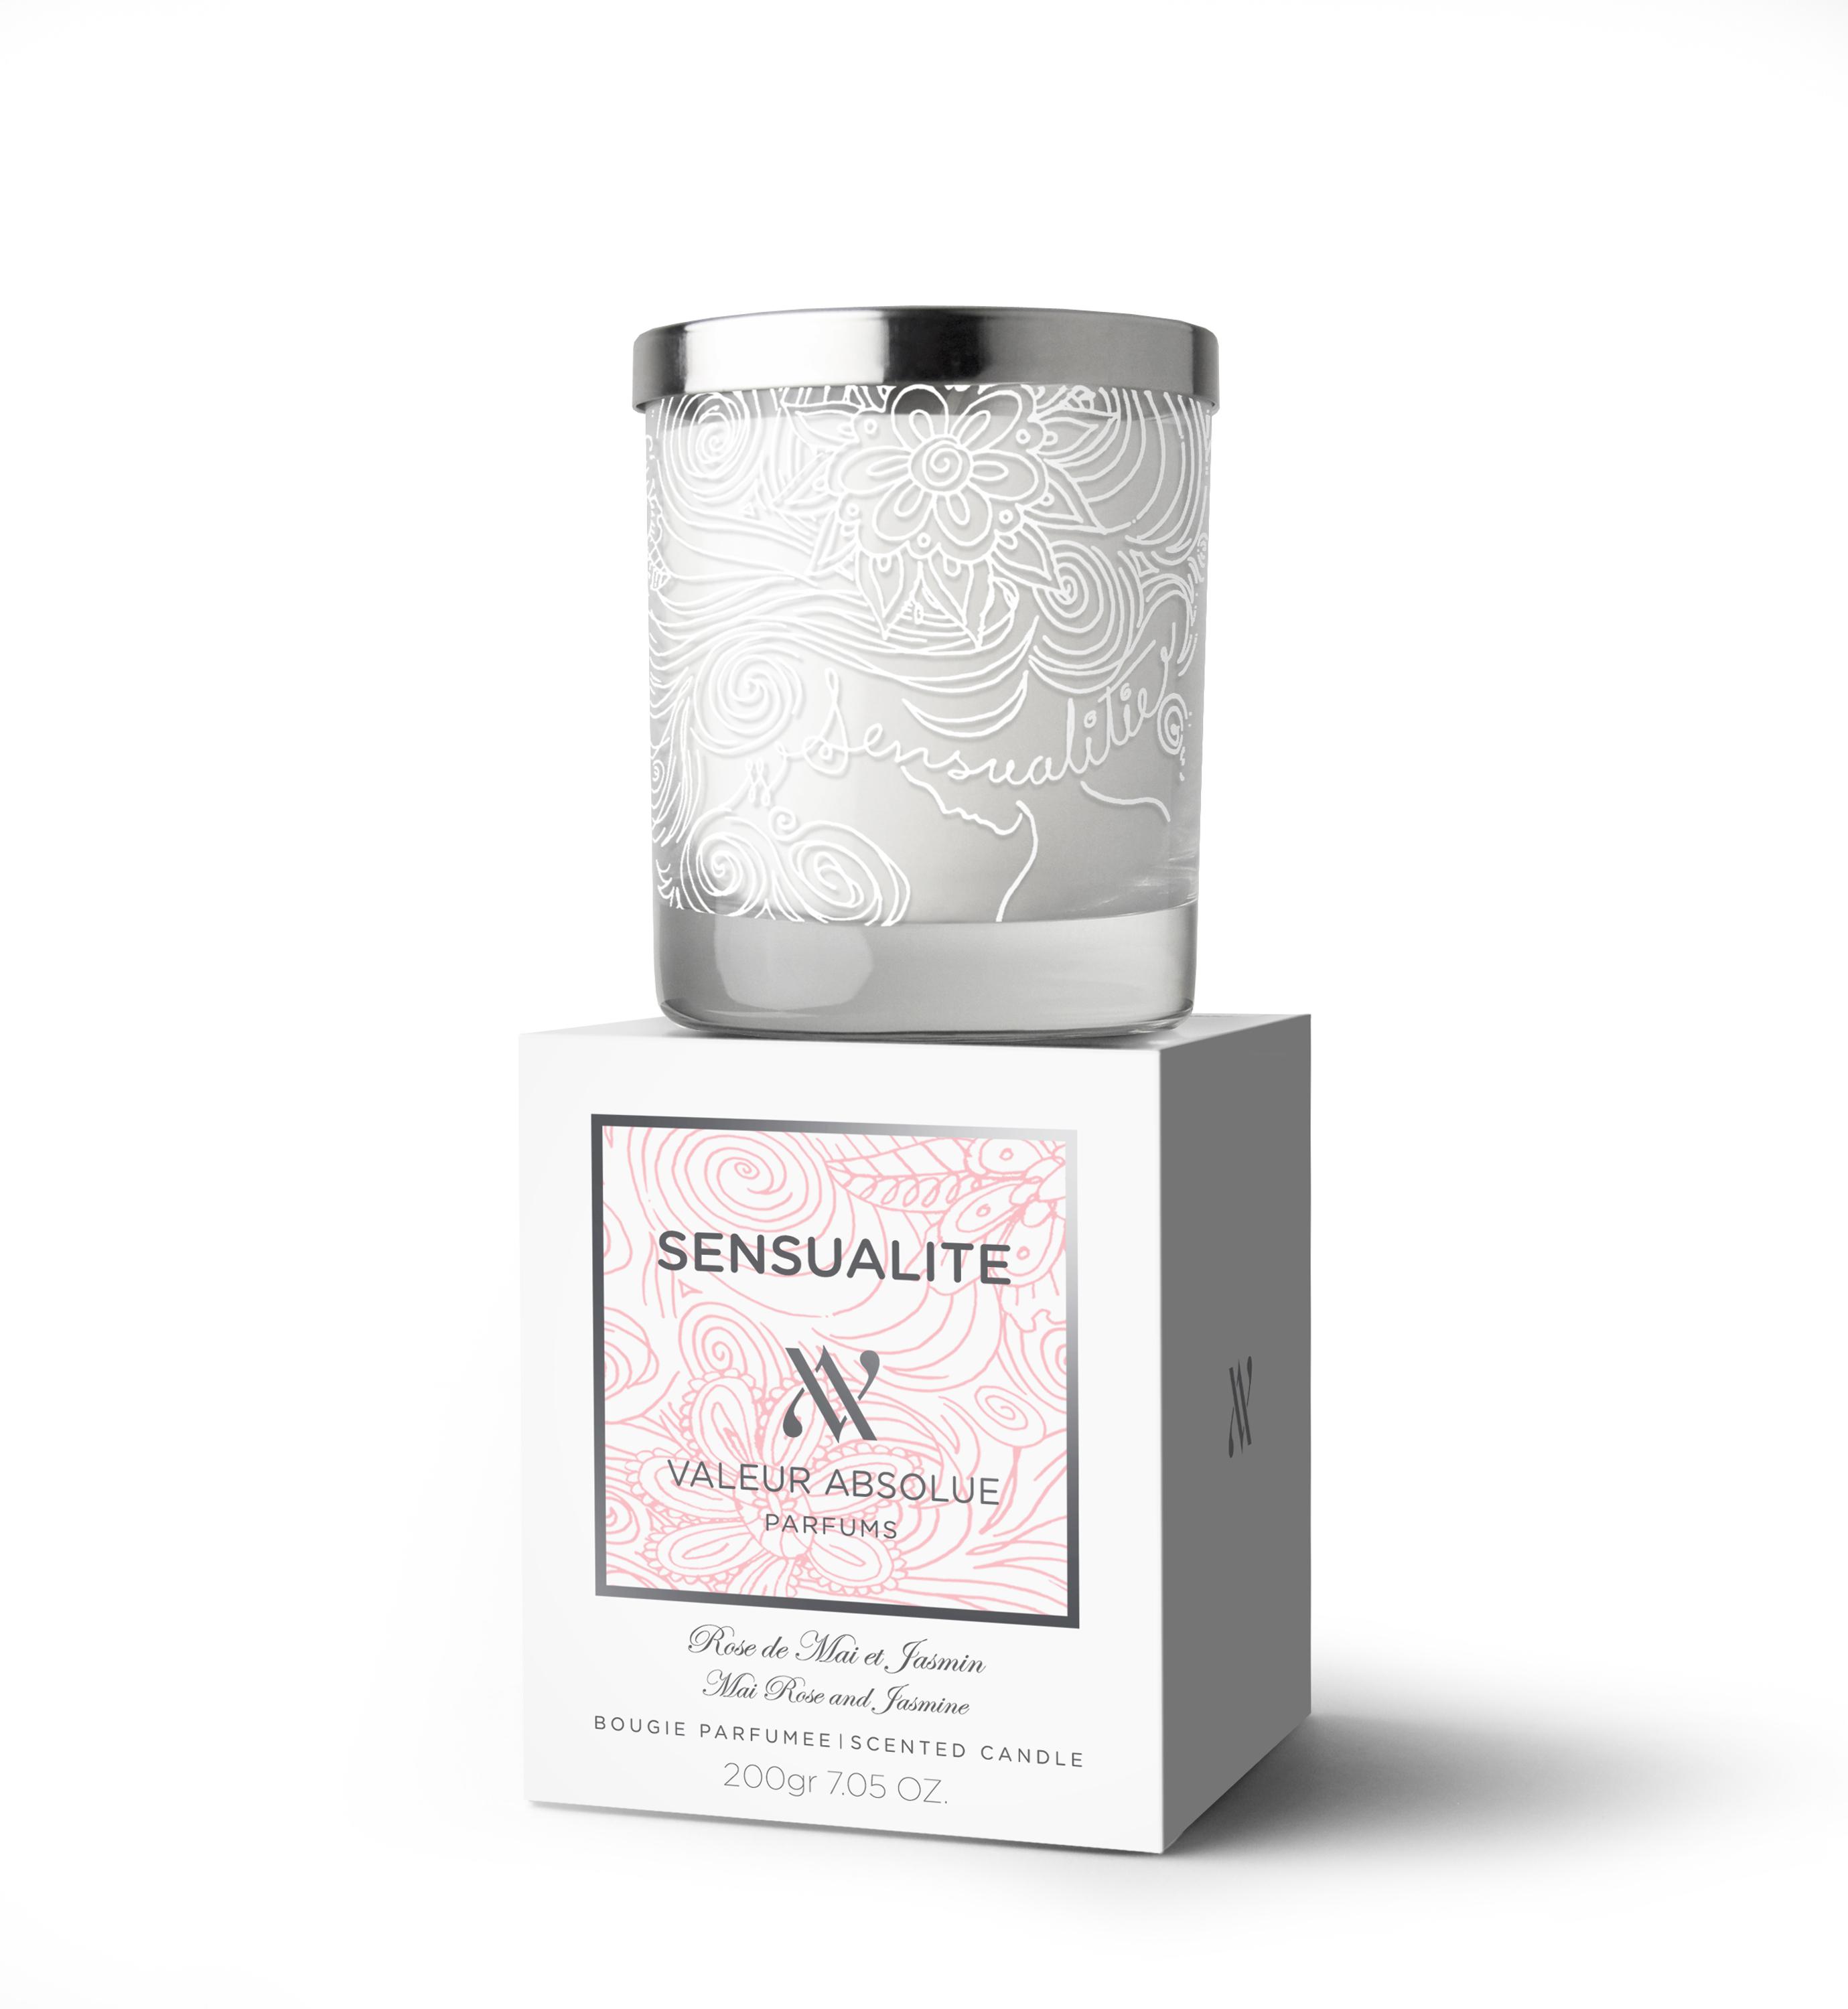 Sensualite Luxury Candle from Valeur Absolue